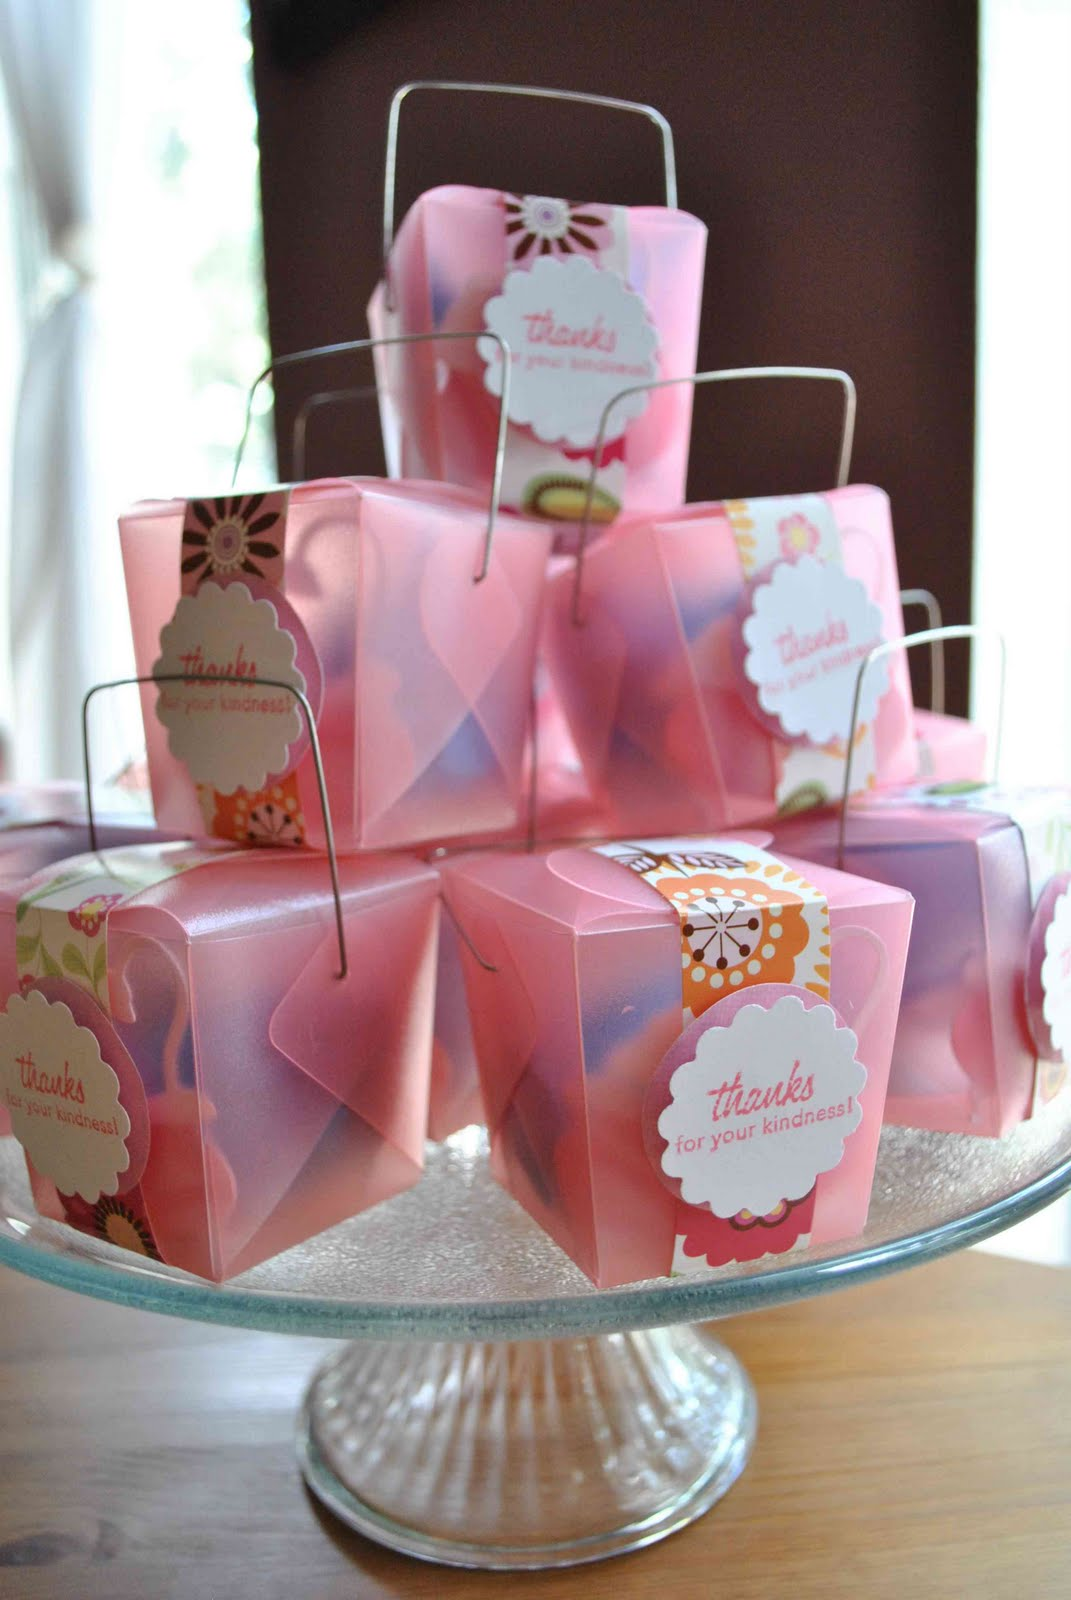 Clearlytangled.: Handmade Baby Shower Favors